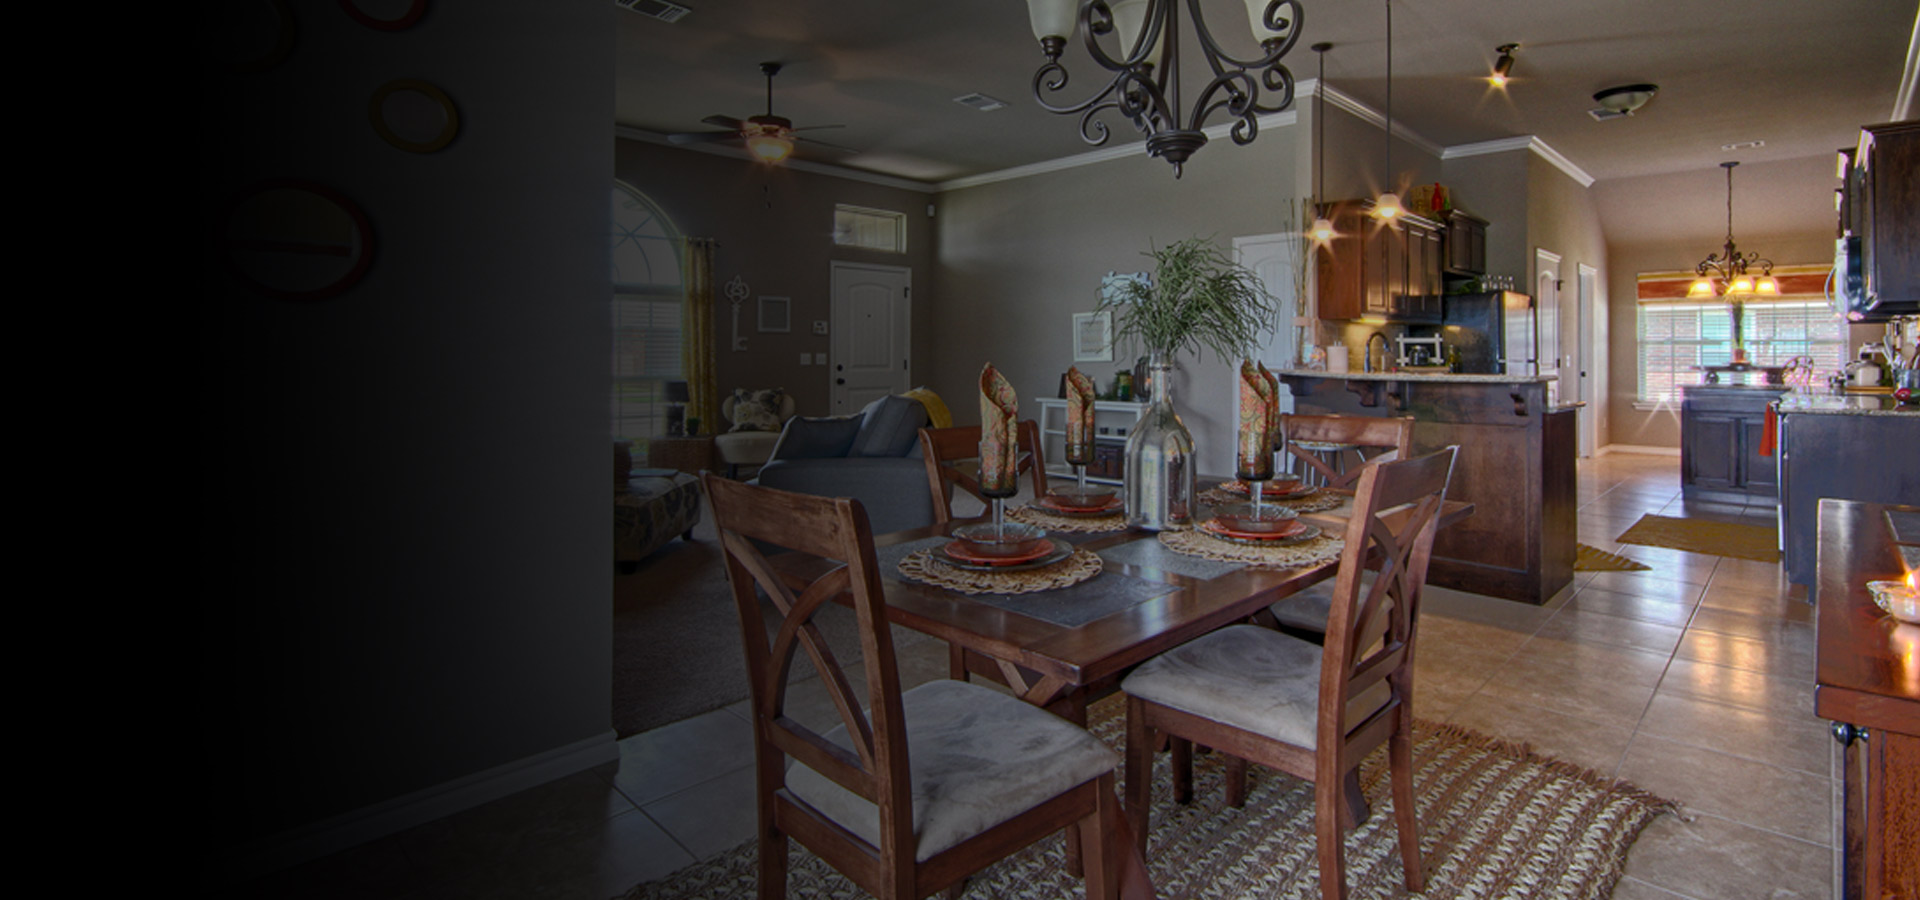 Home Creations Oklahoma 39 S Largest New Home Builder